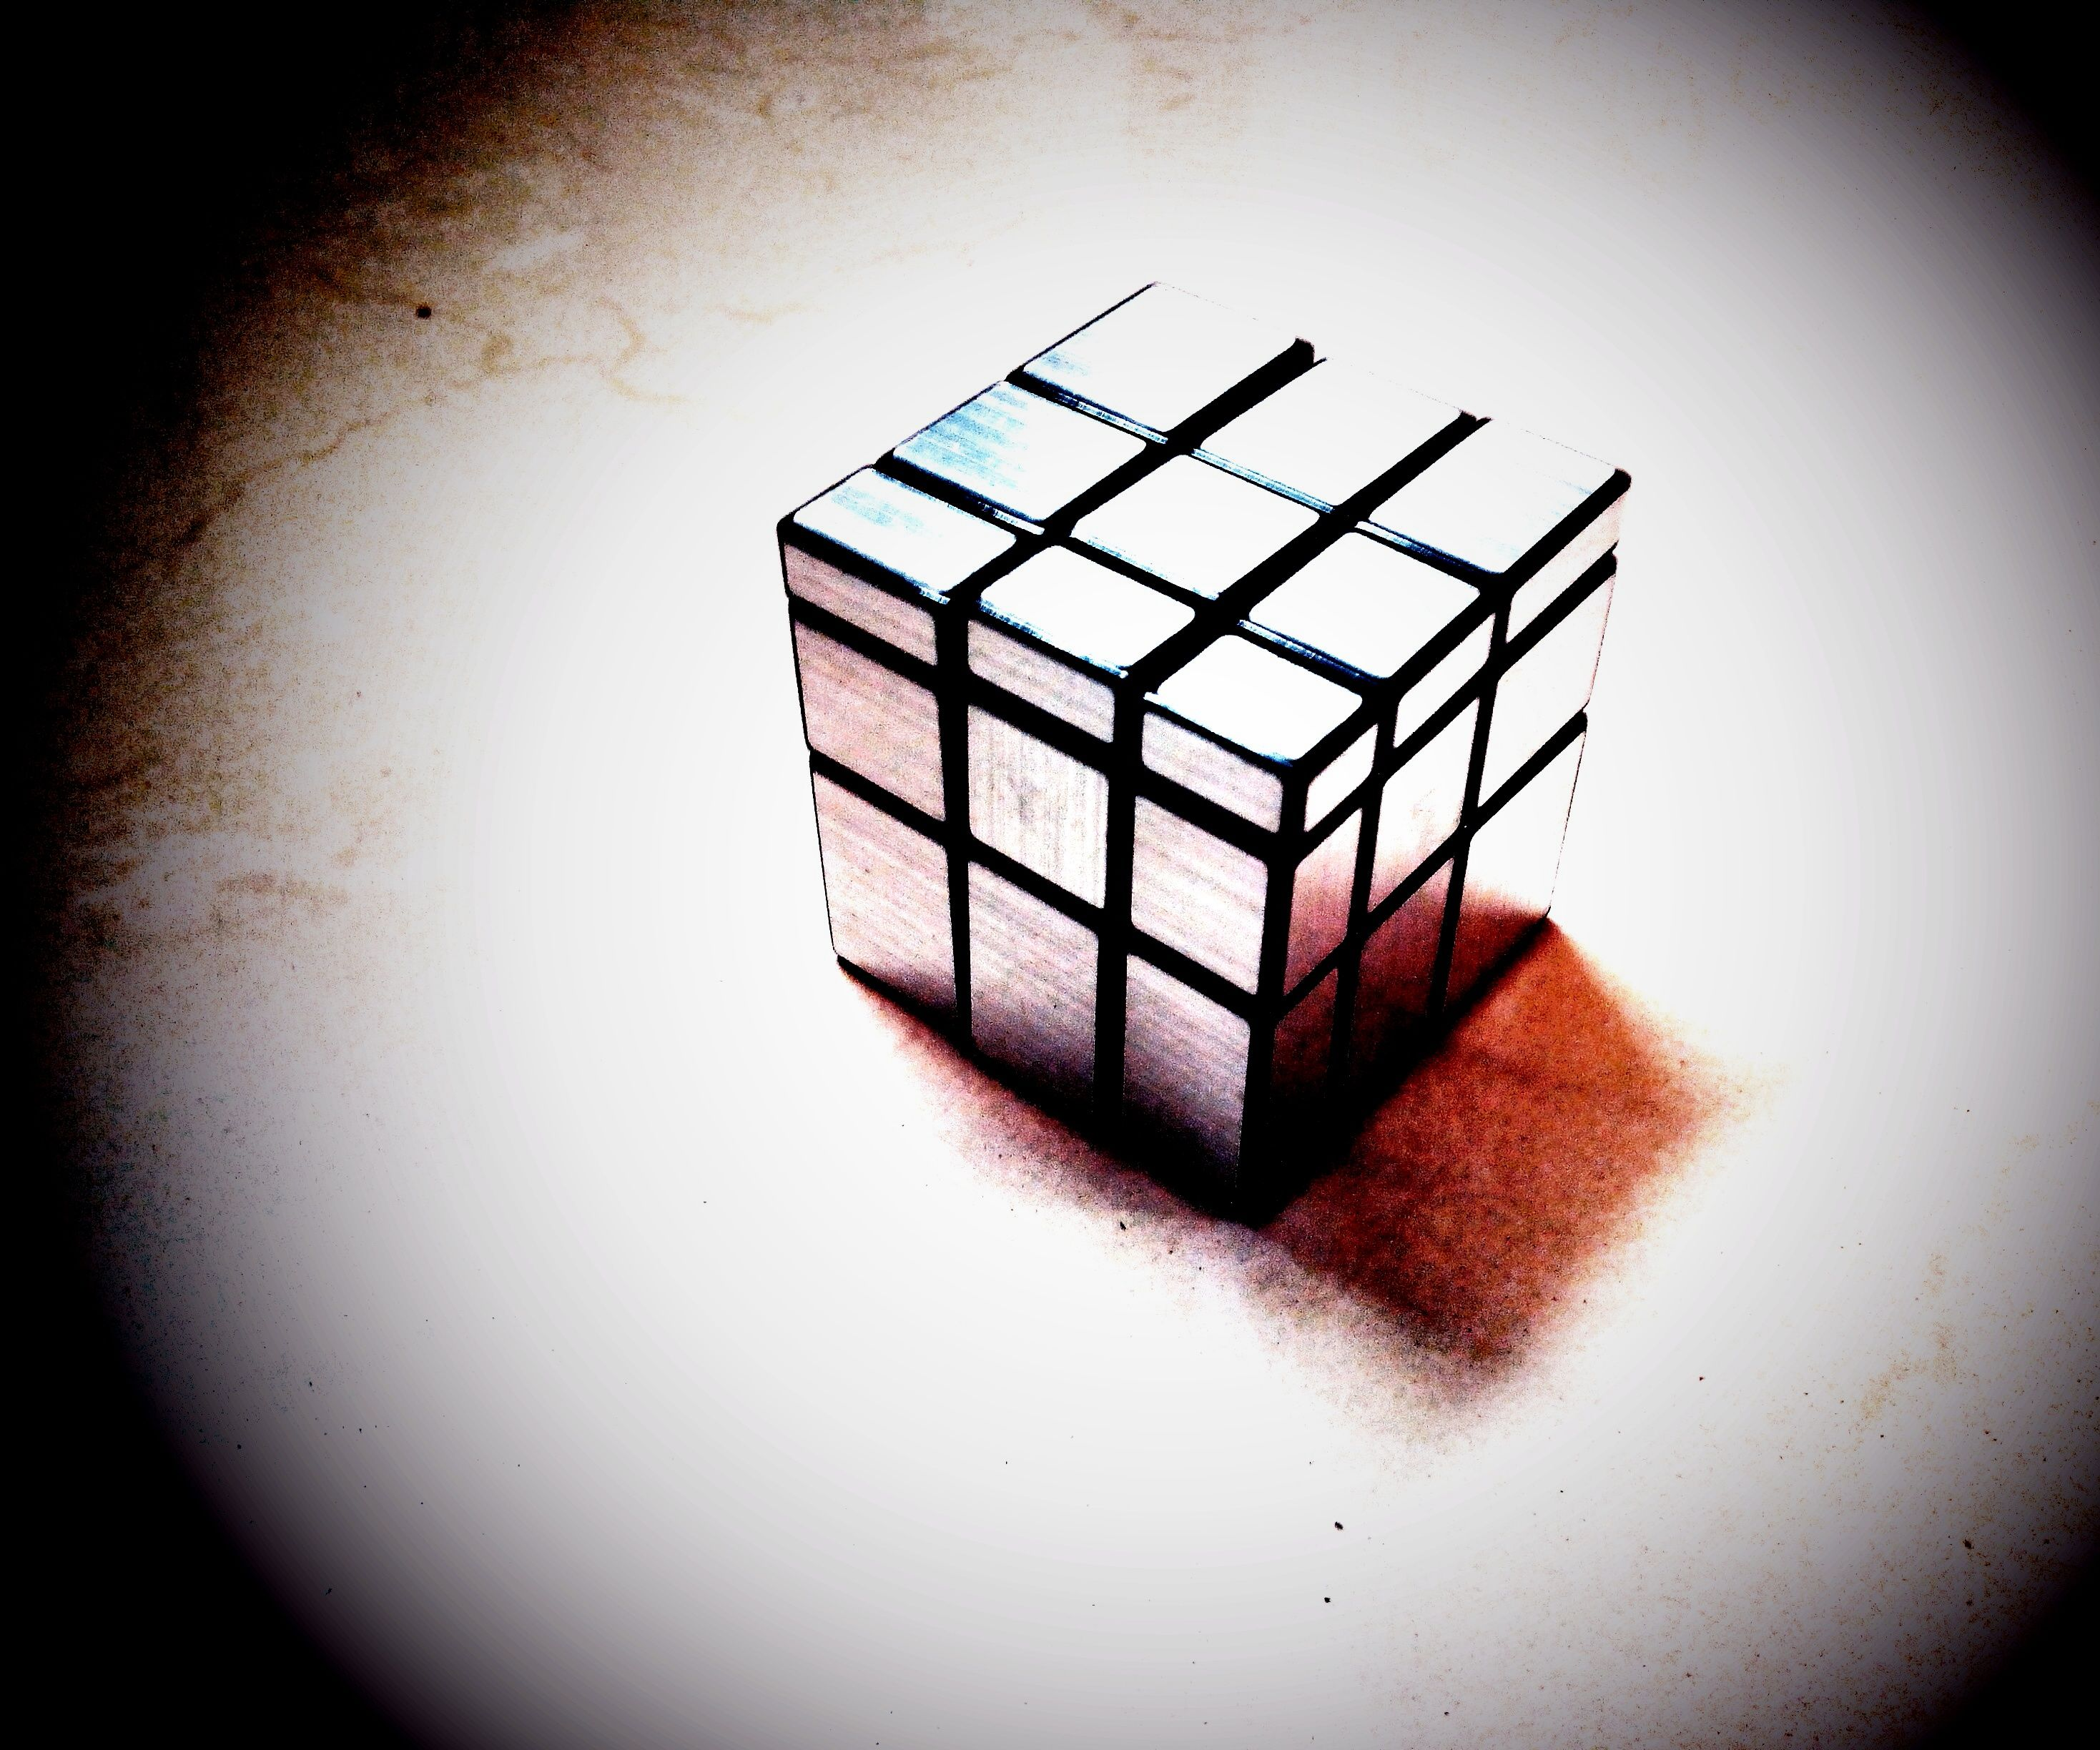 Solving the Mirror Cube (Faster and Easier)